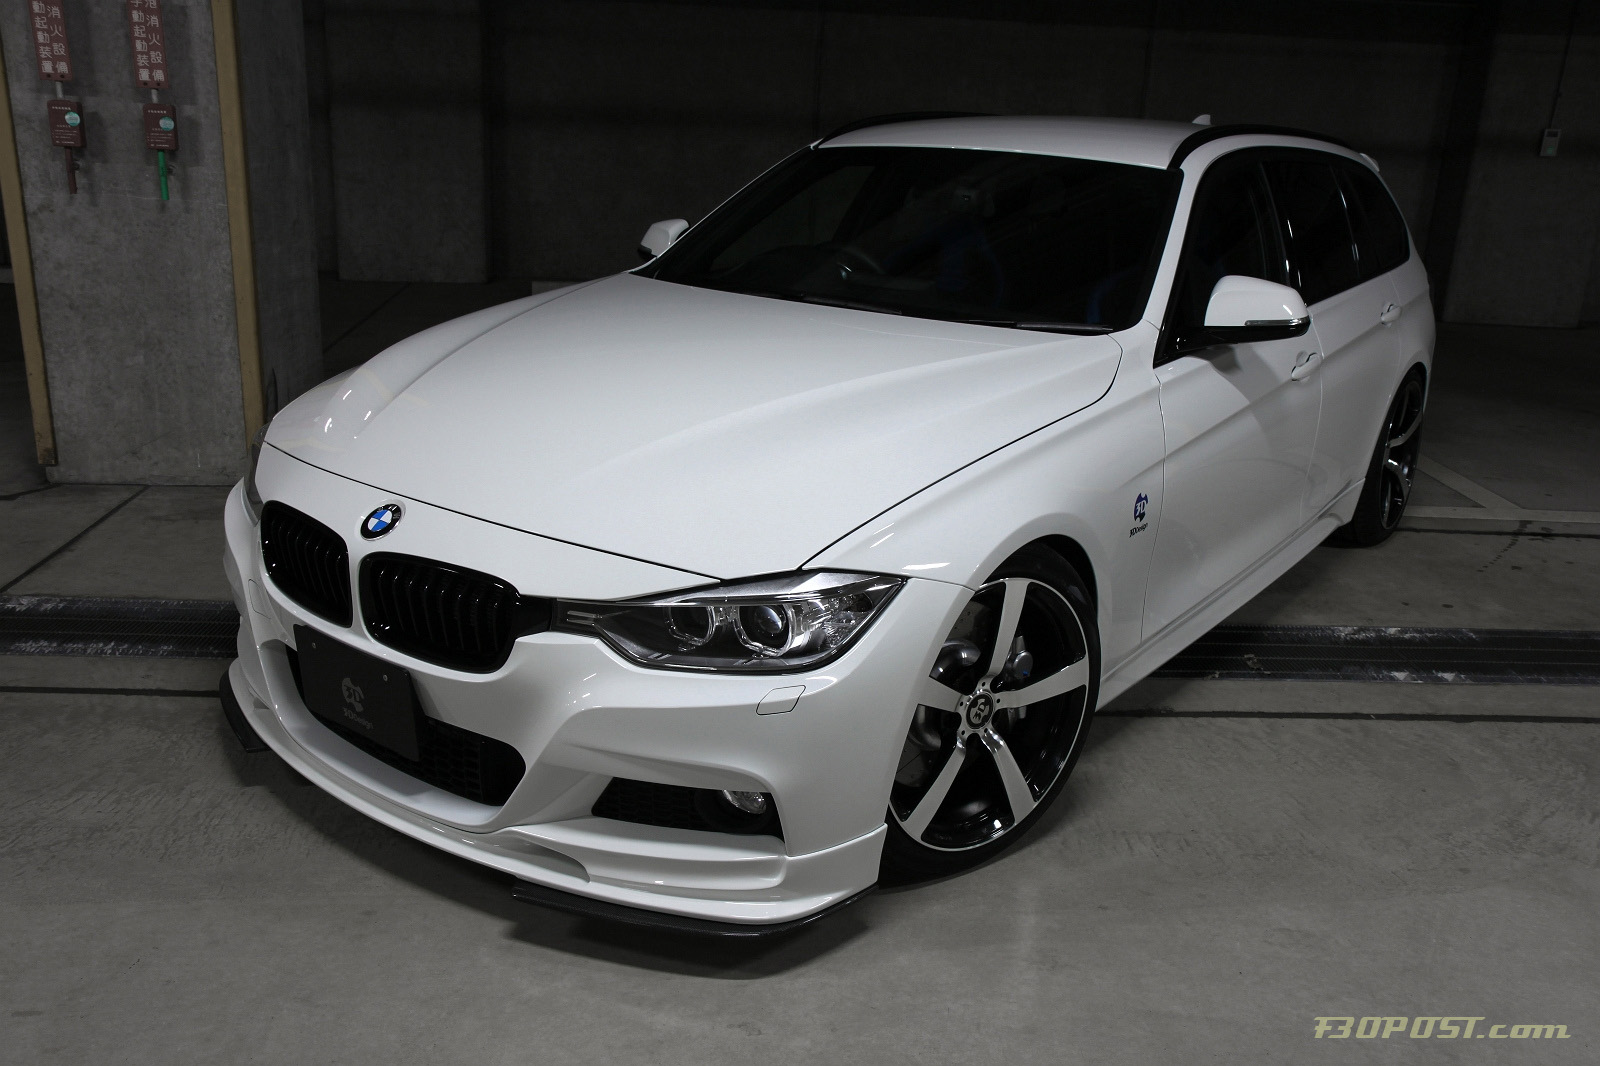 3D Design Presents the F31 M Sport 3 Series Touring